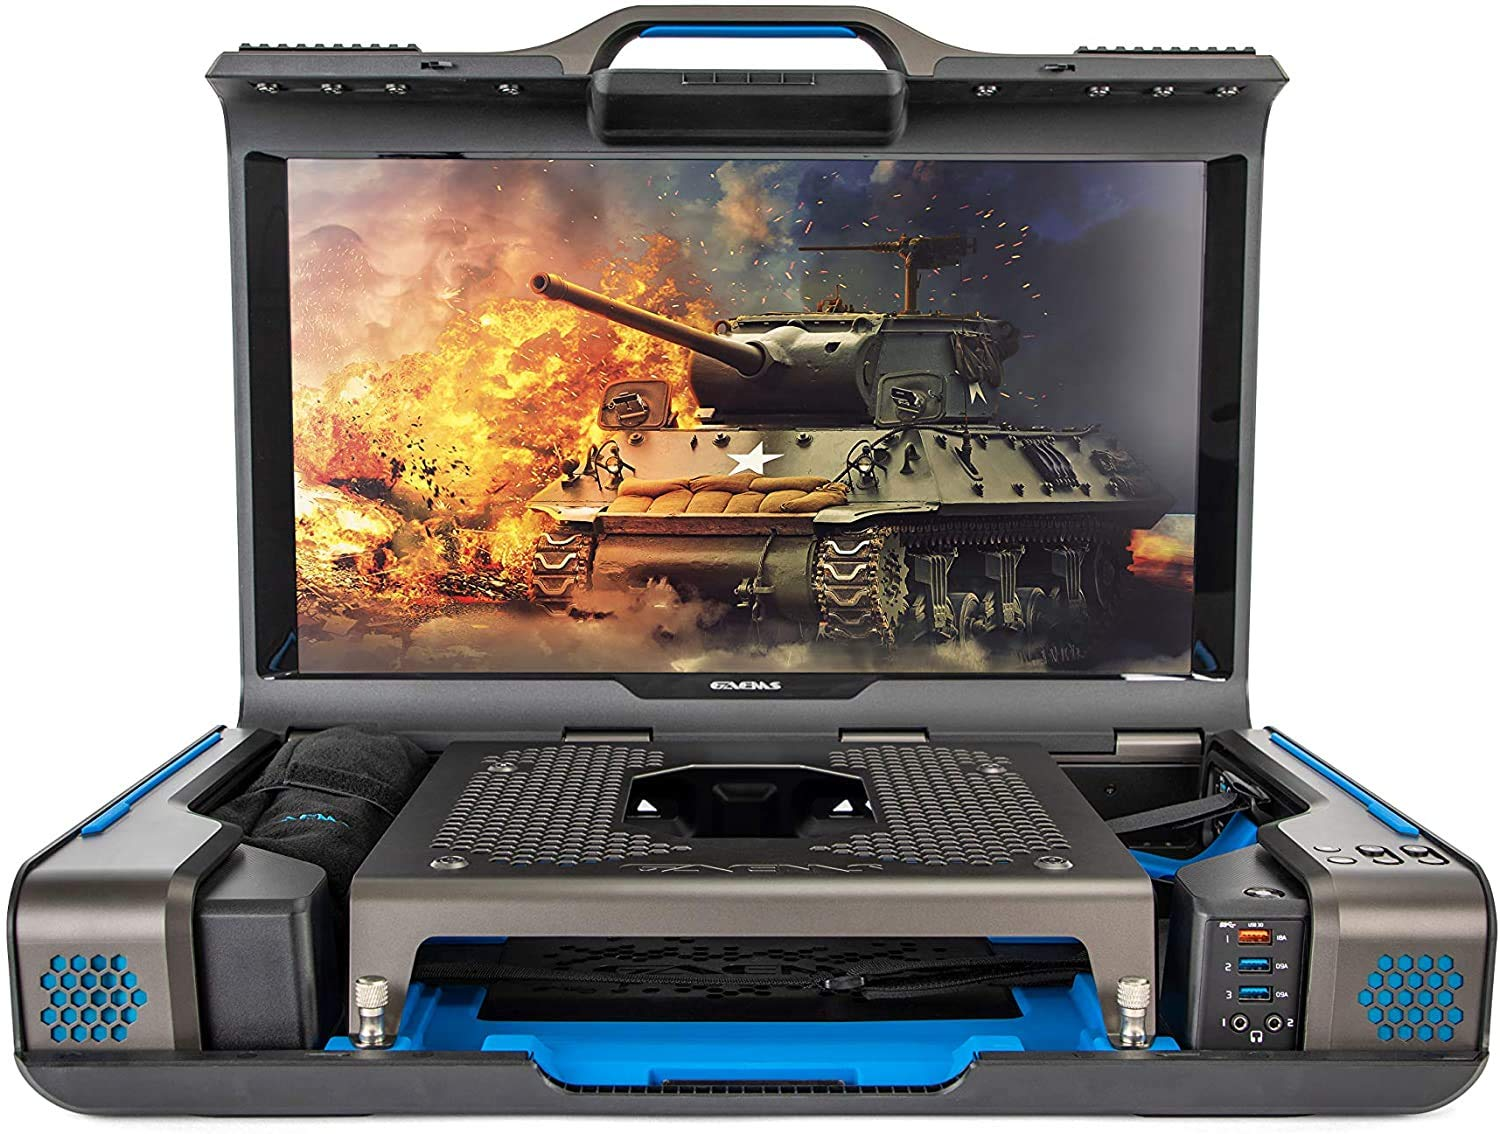 GAEMS Guardian Pro Xp - Ultimate Gaming Environment for PS4, Pro, Xbox One S, Xbox One X, Atx PC ( Consoles Not Included) - Not Machine Specific